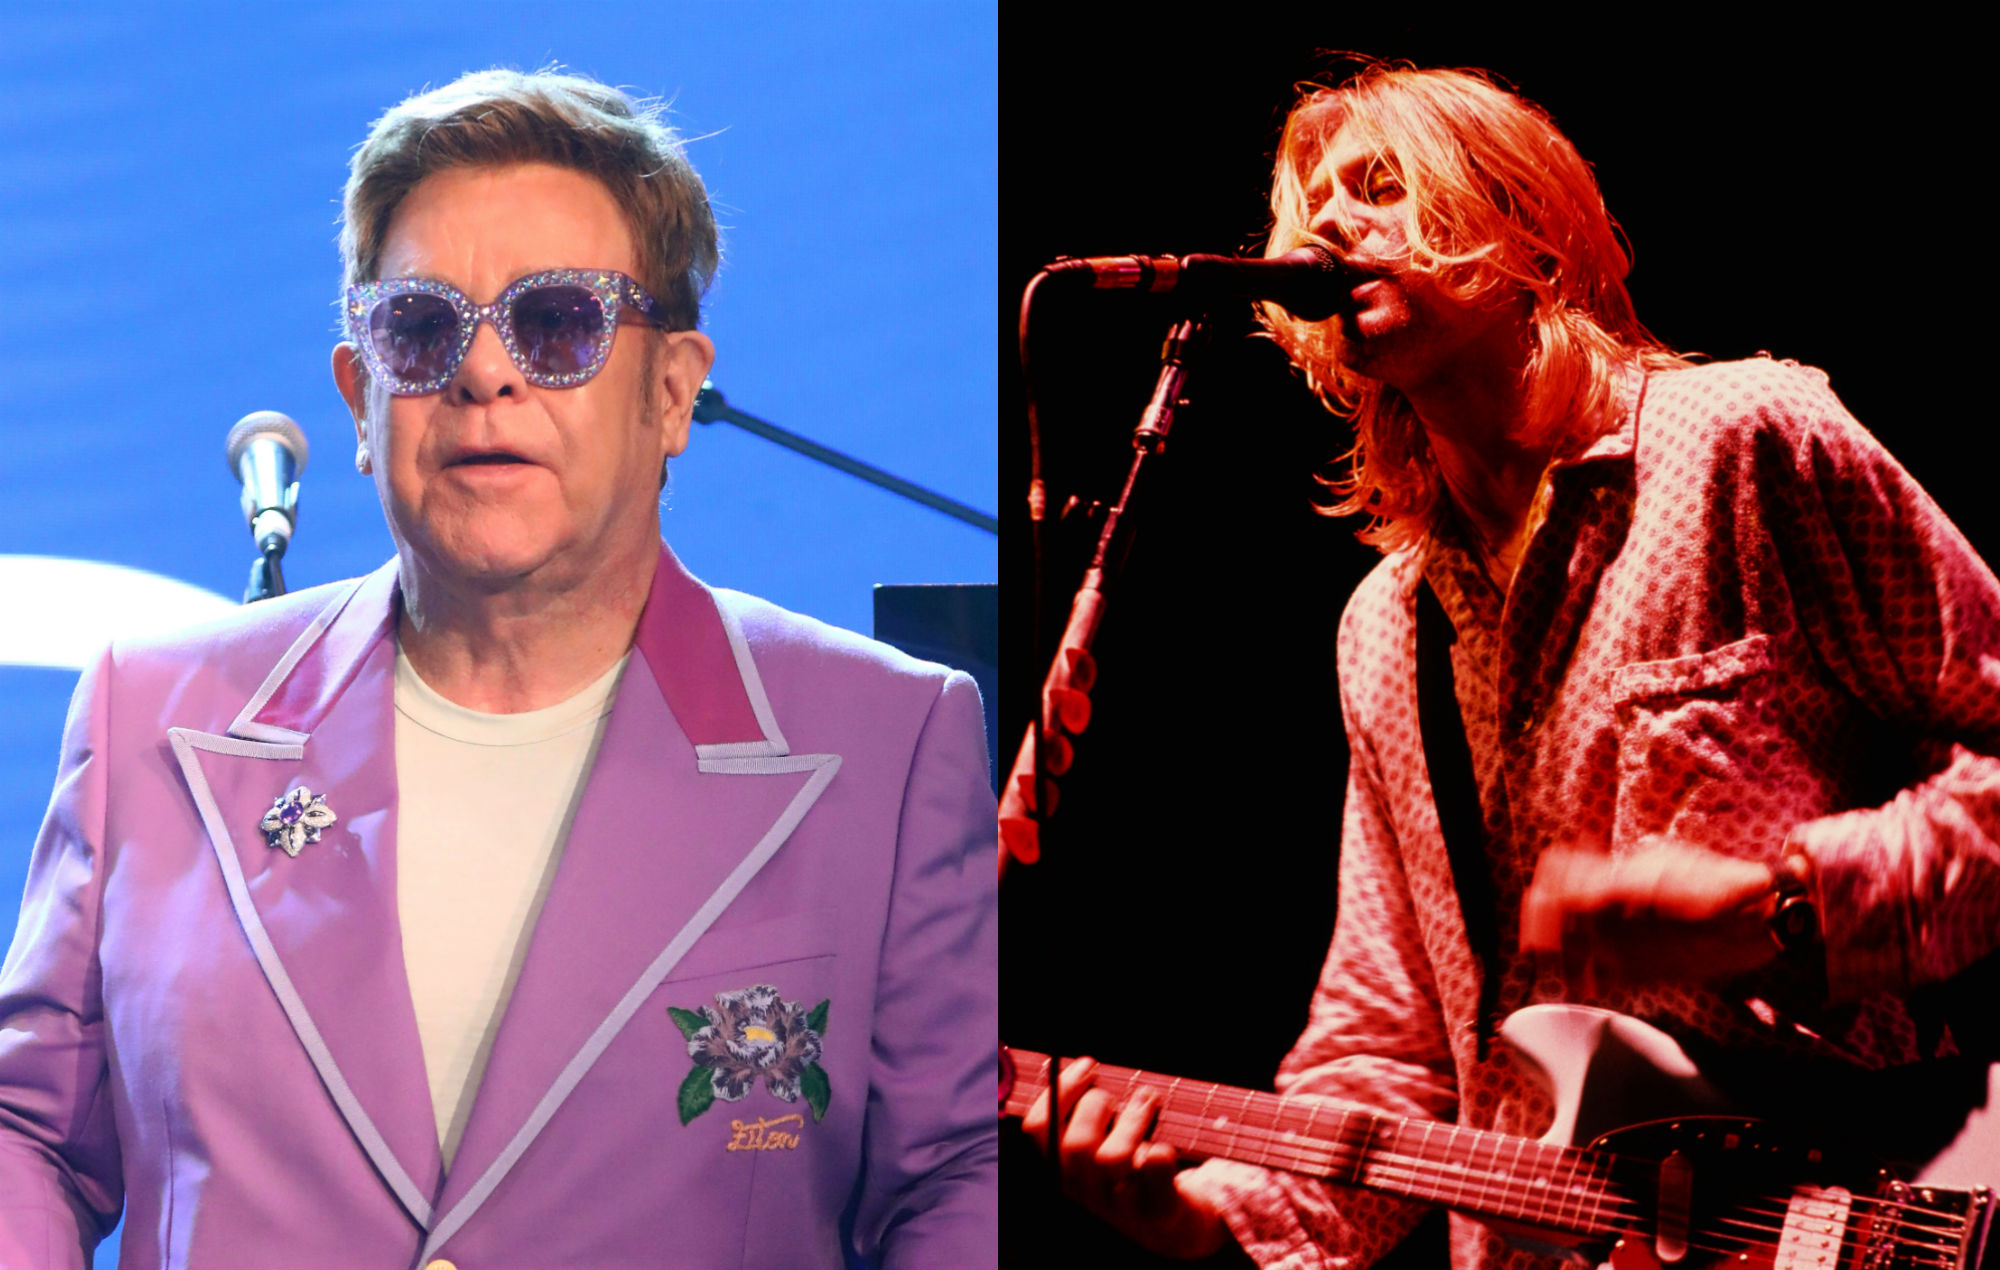 """UMG confirms Nirvana and Elton John recordings were among those """"affected"""" by vault fire"""